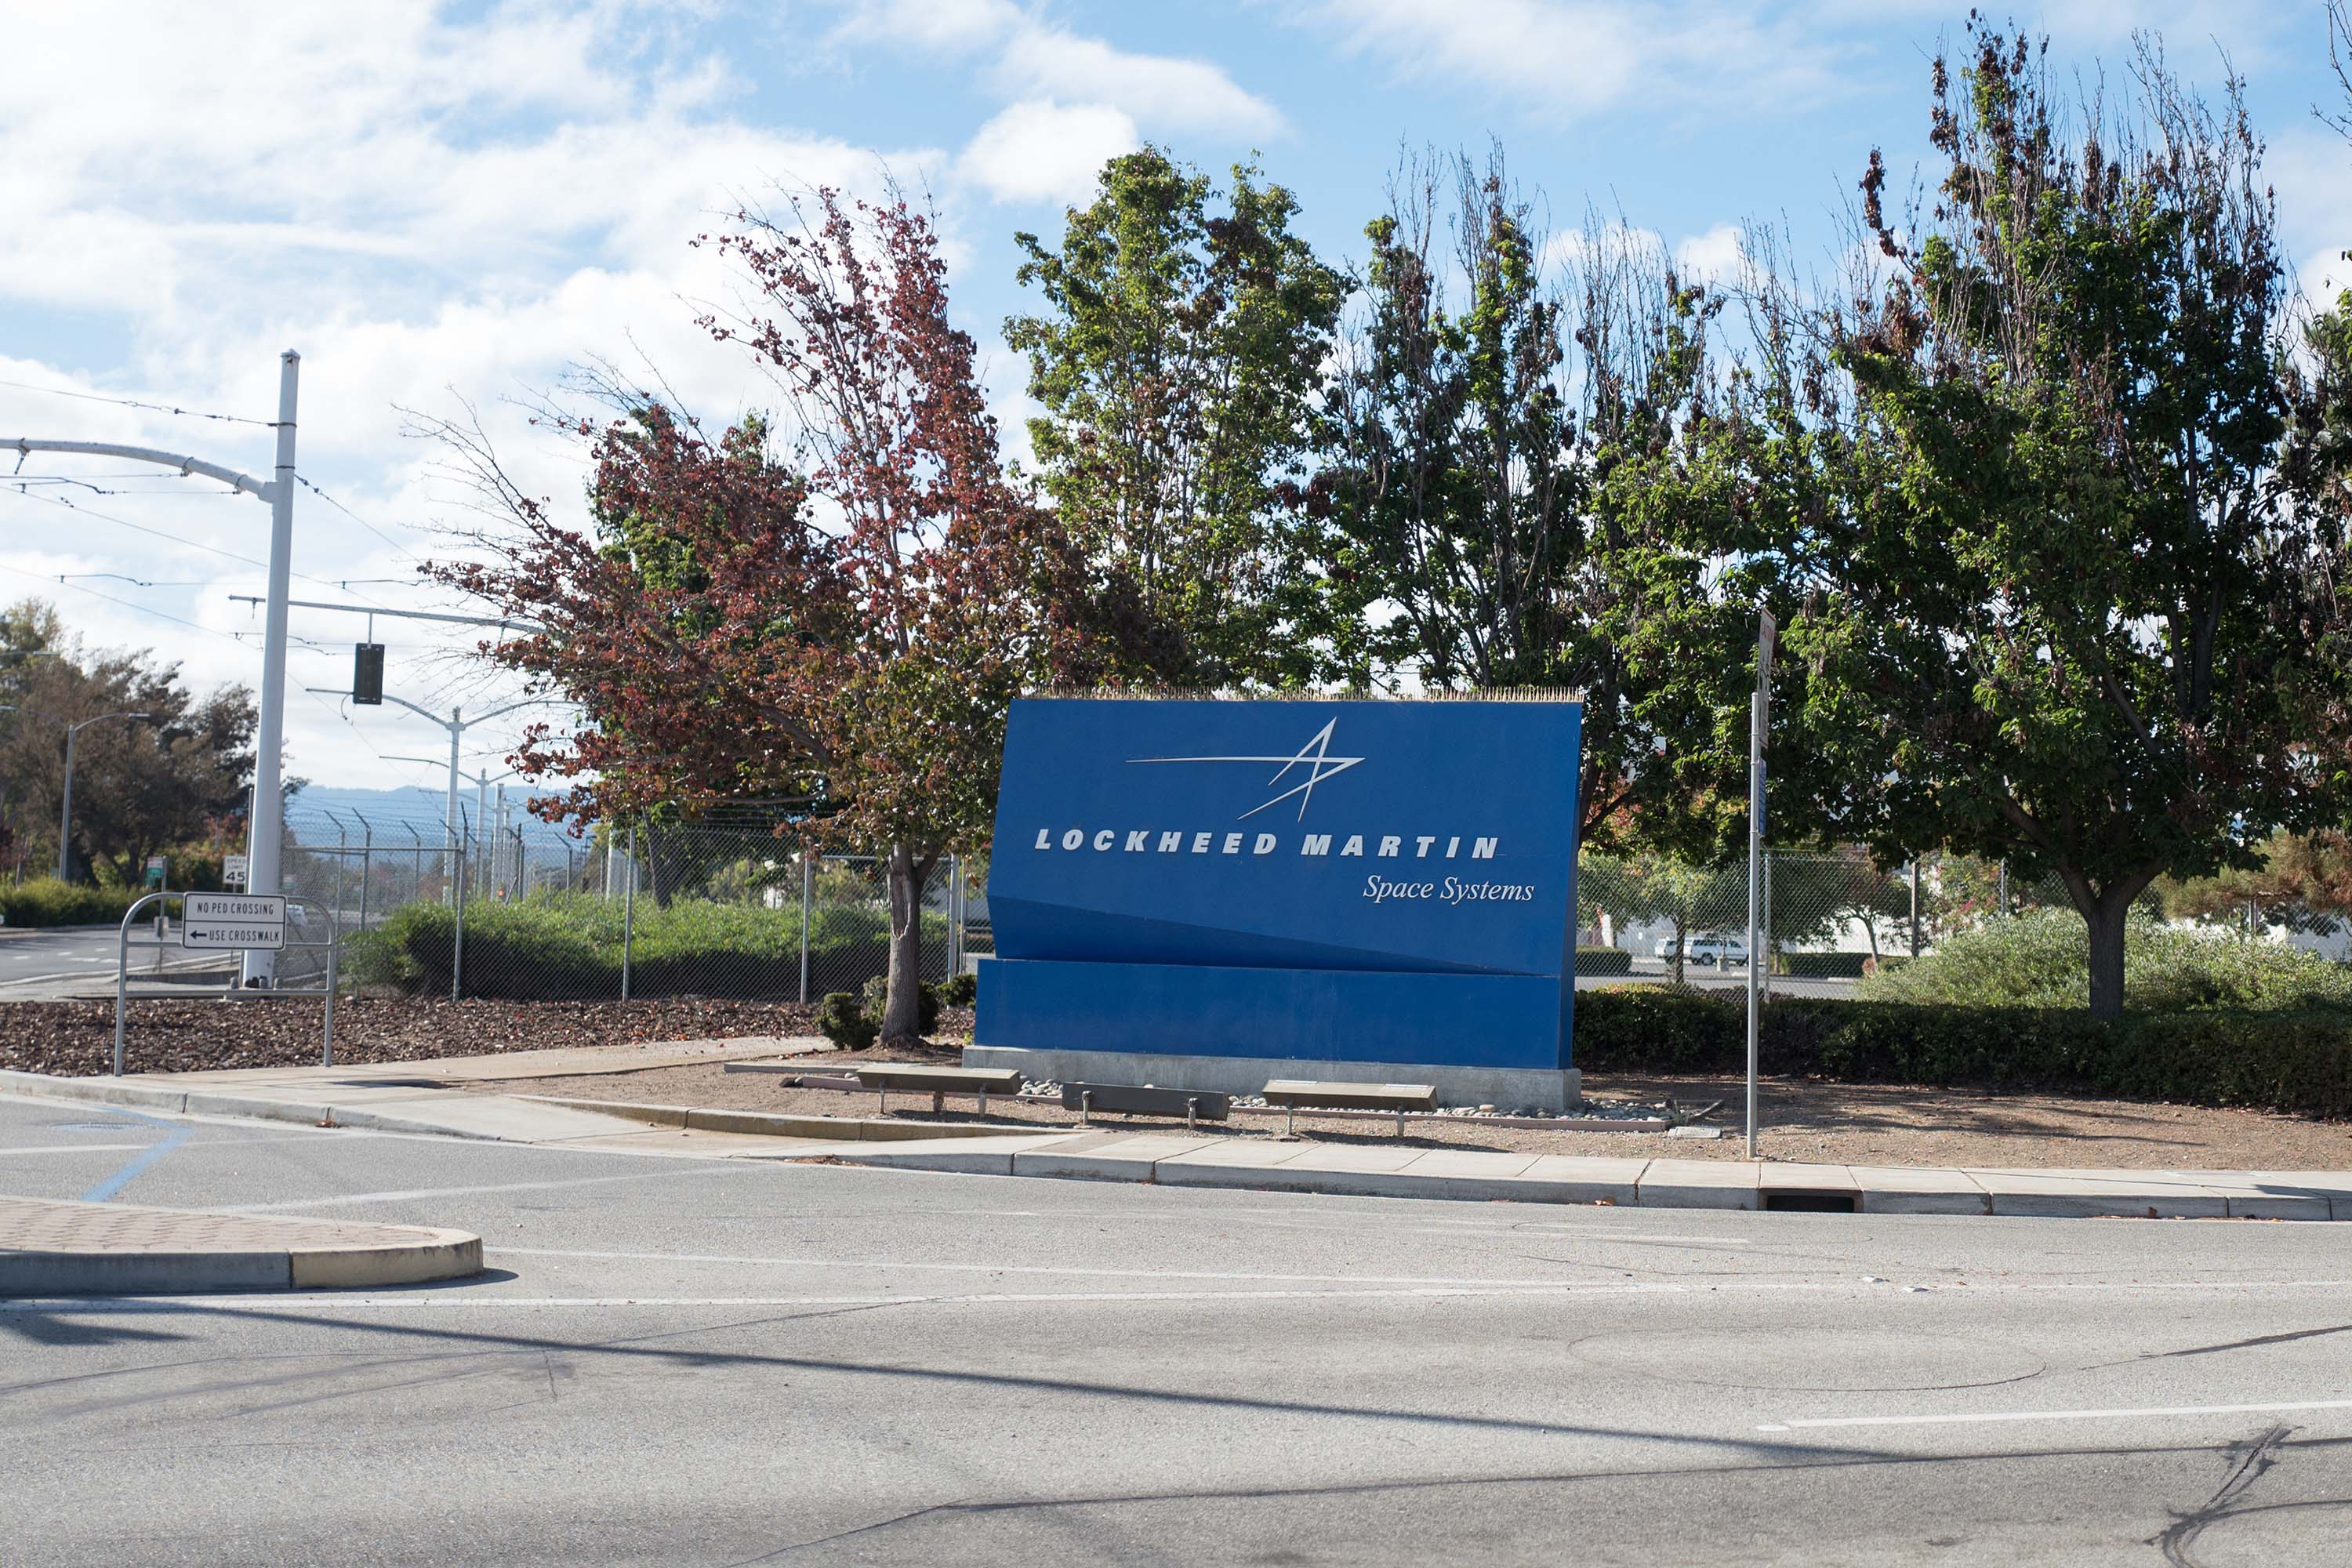 The entrance to regional headquarters of Lockheed Martin in Sunnyvale, California, pictured in October 2018.